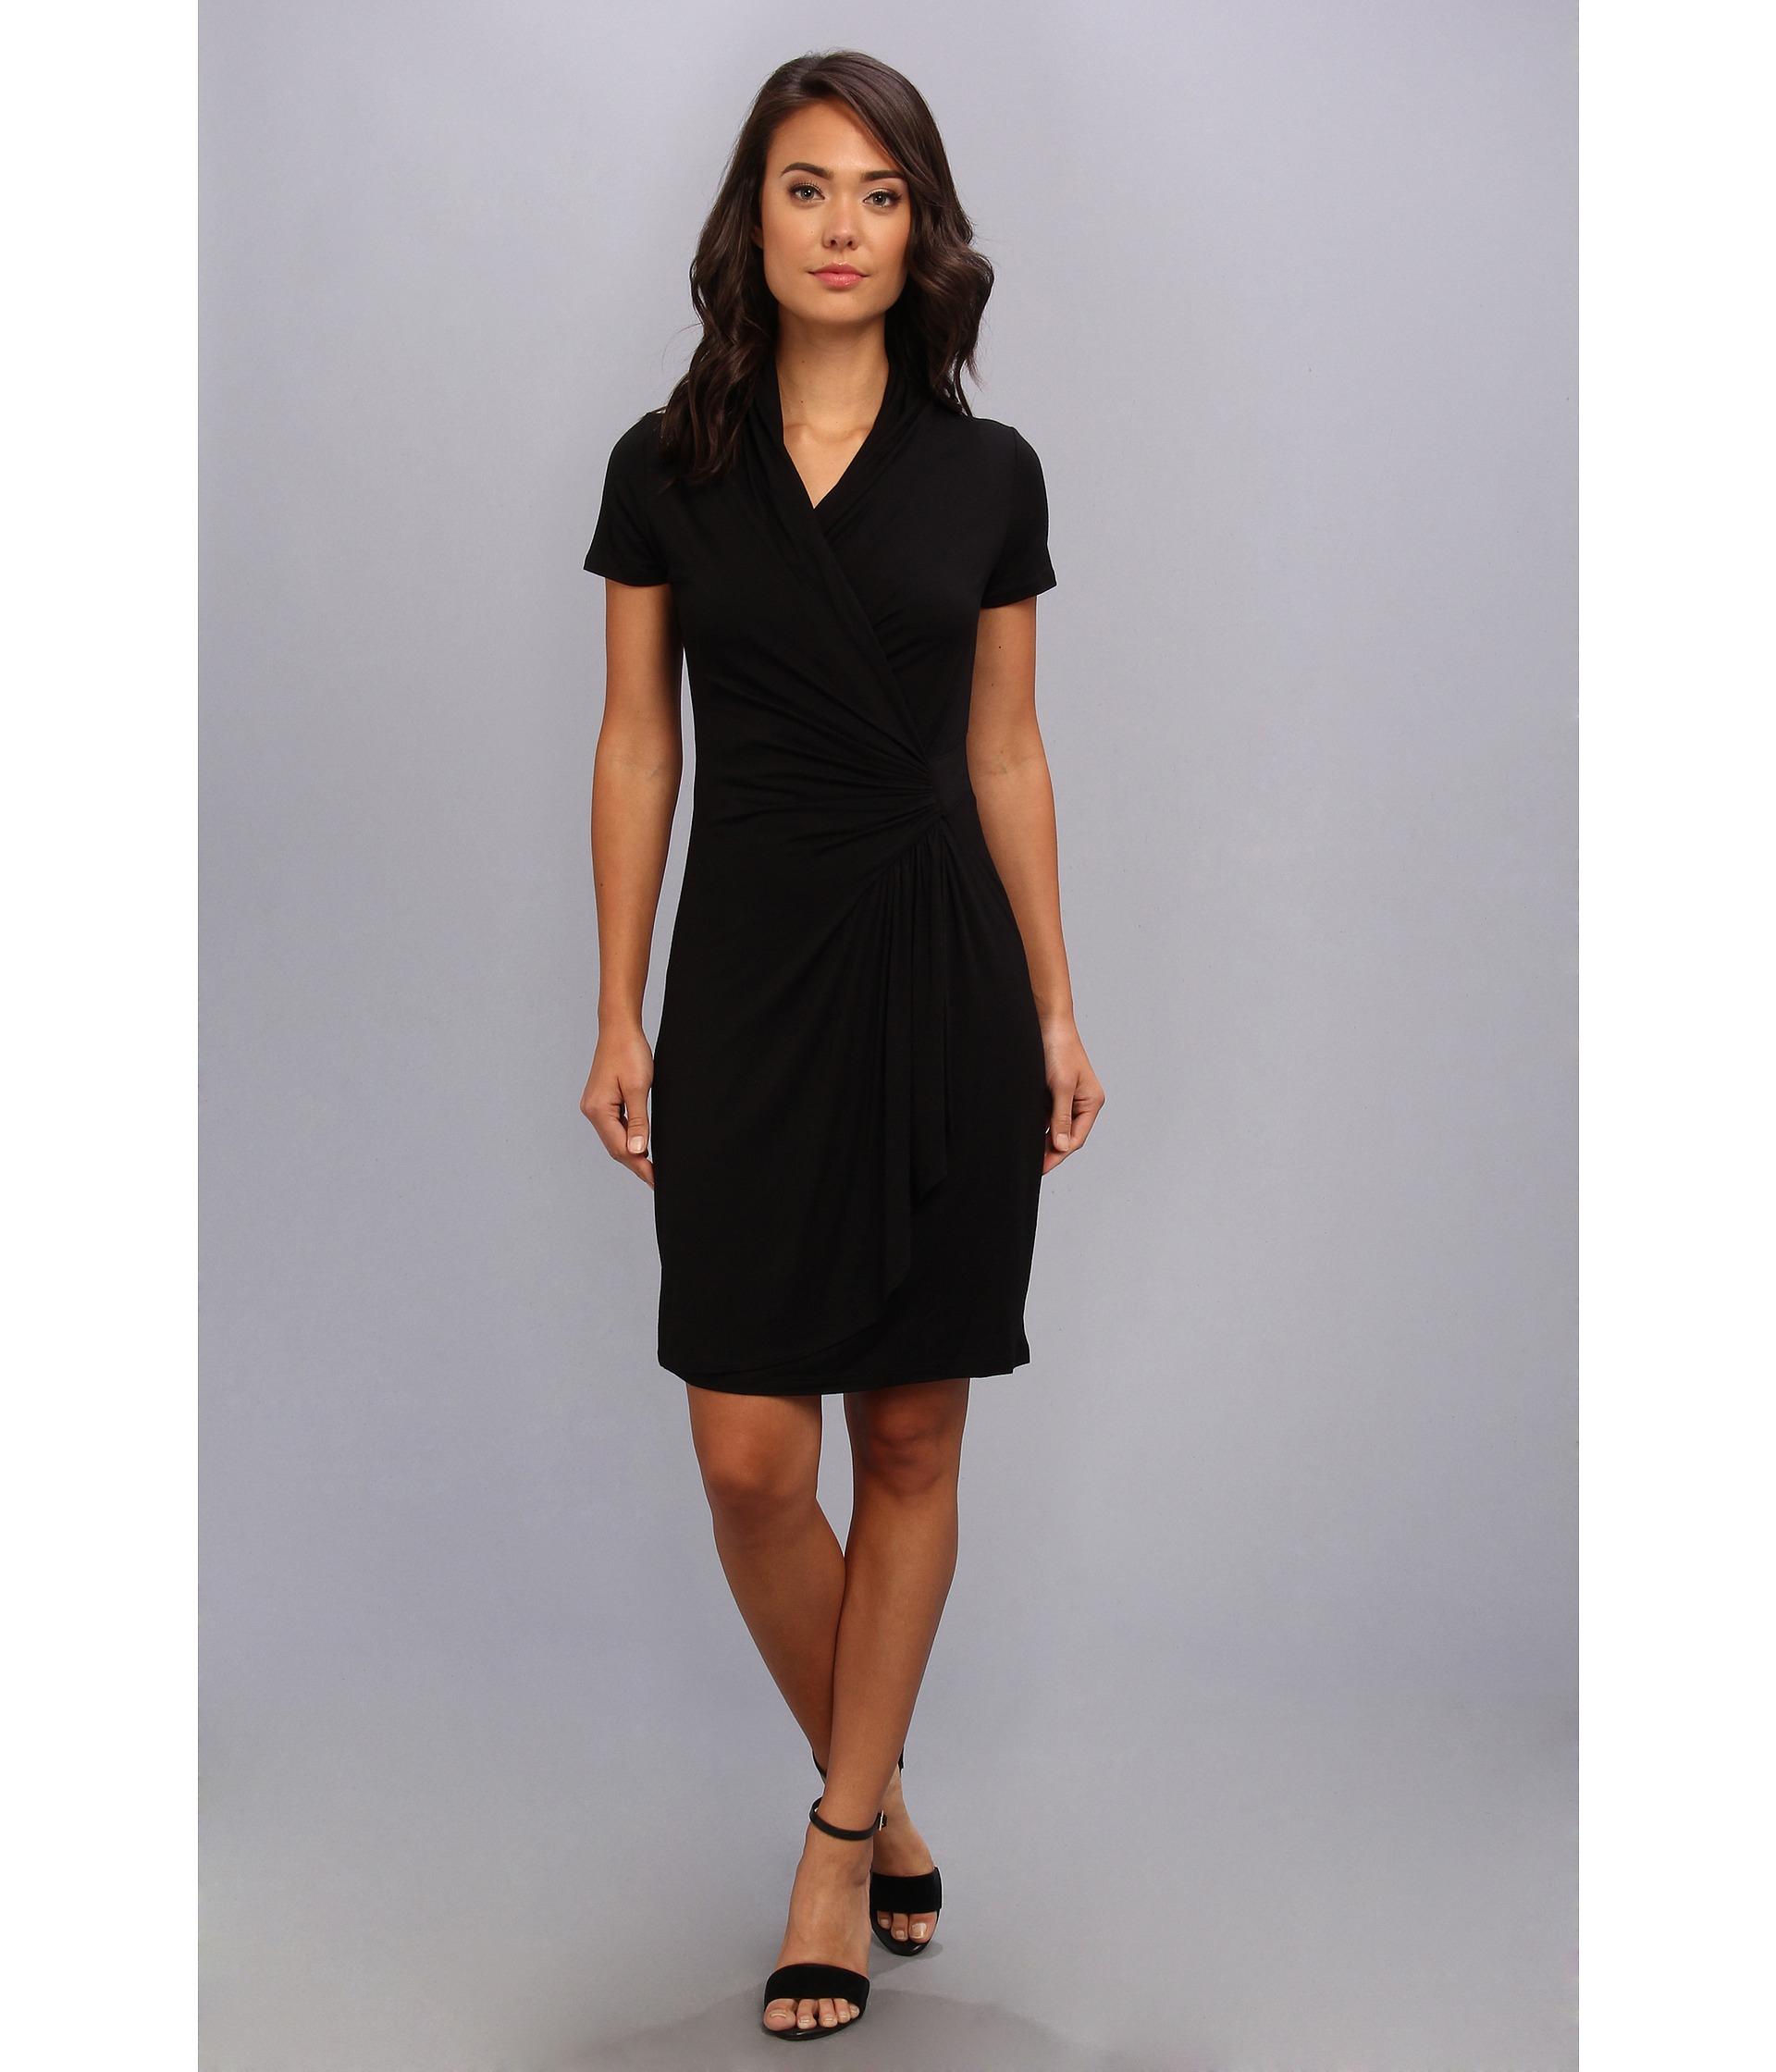 Free shipping BOTH ways on Dresses, Black, Short Sleeve, from our vast selection of styles. Fast delivery, and 24/7/ real-person service with a smile. Click or call